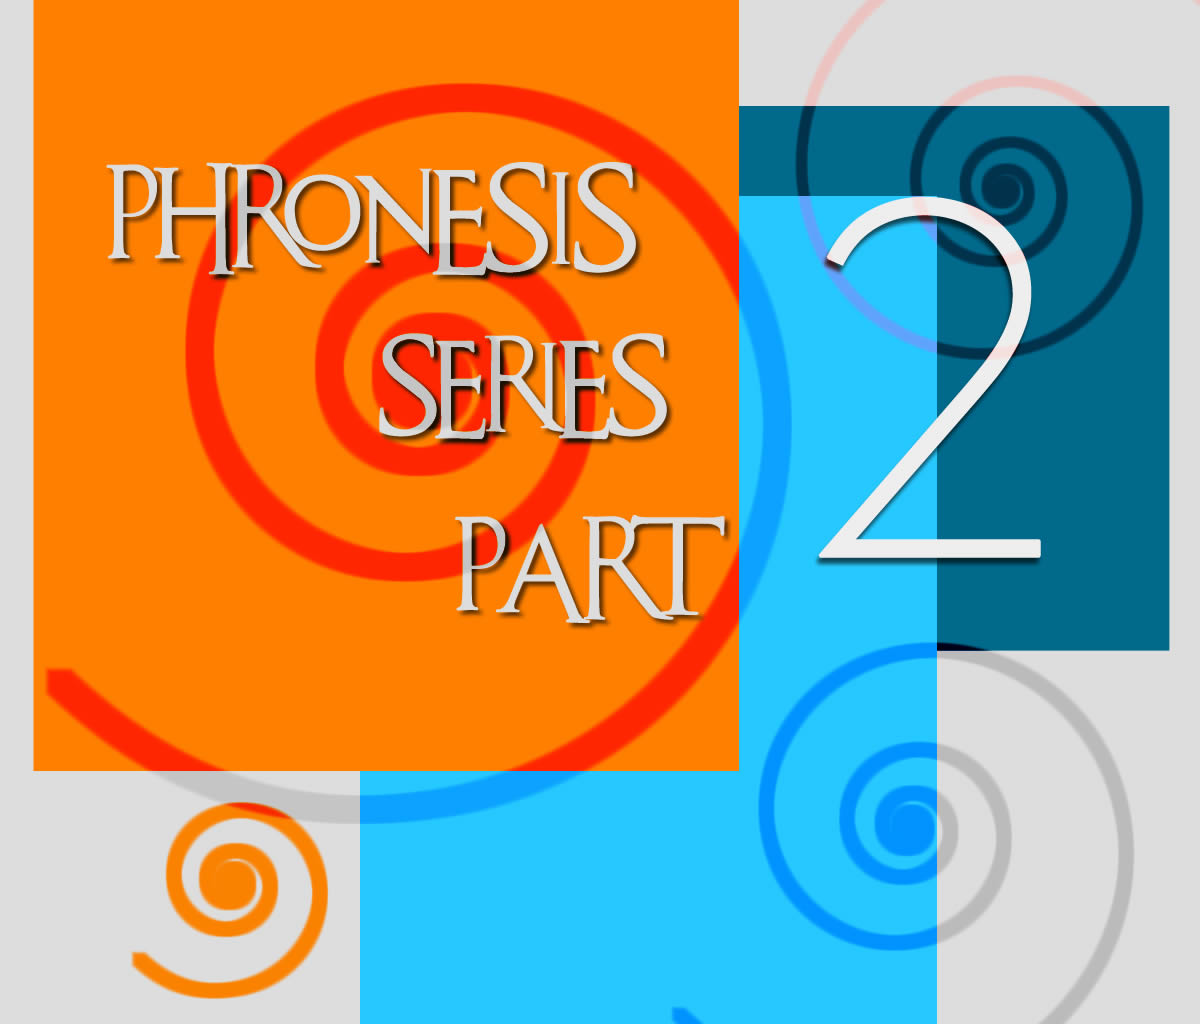 PHRONESIS SERIES PART 2